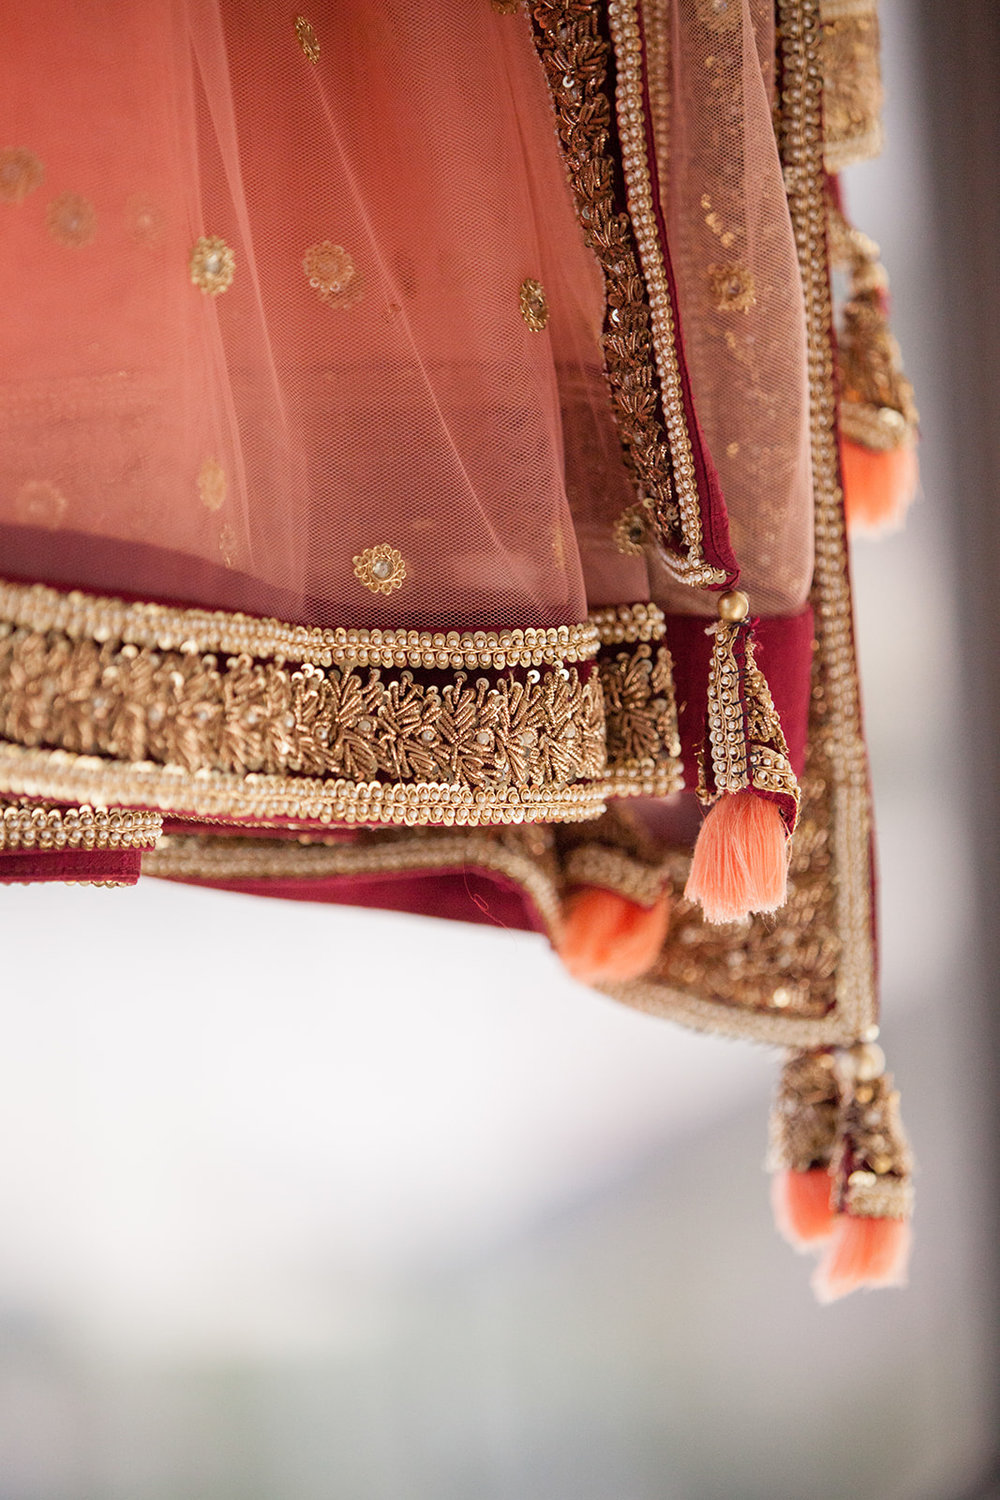 Le Cape Weddings - Puja and Kheelan - Pretty Details -17.jpg